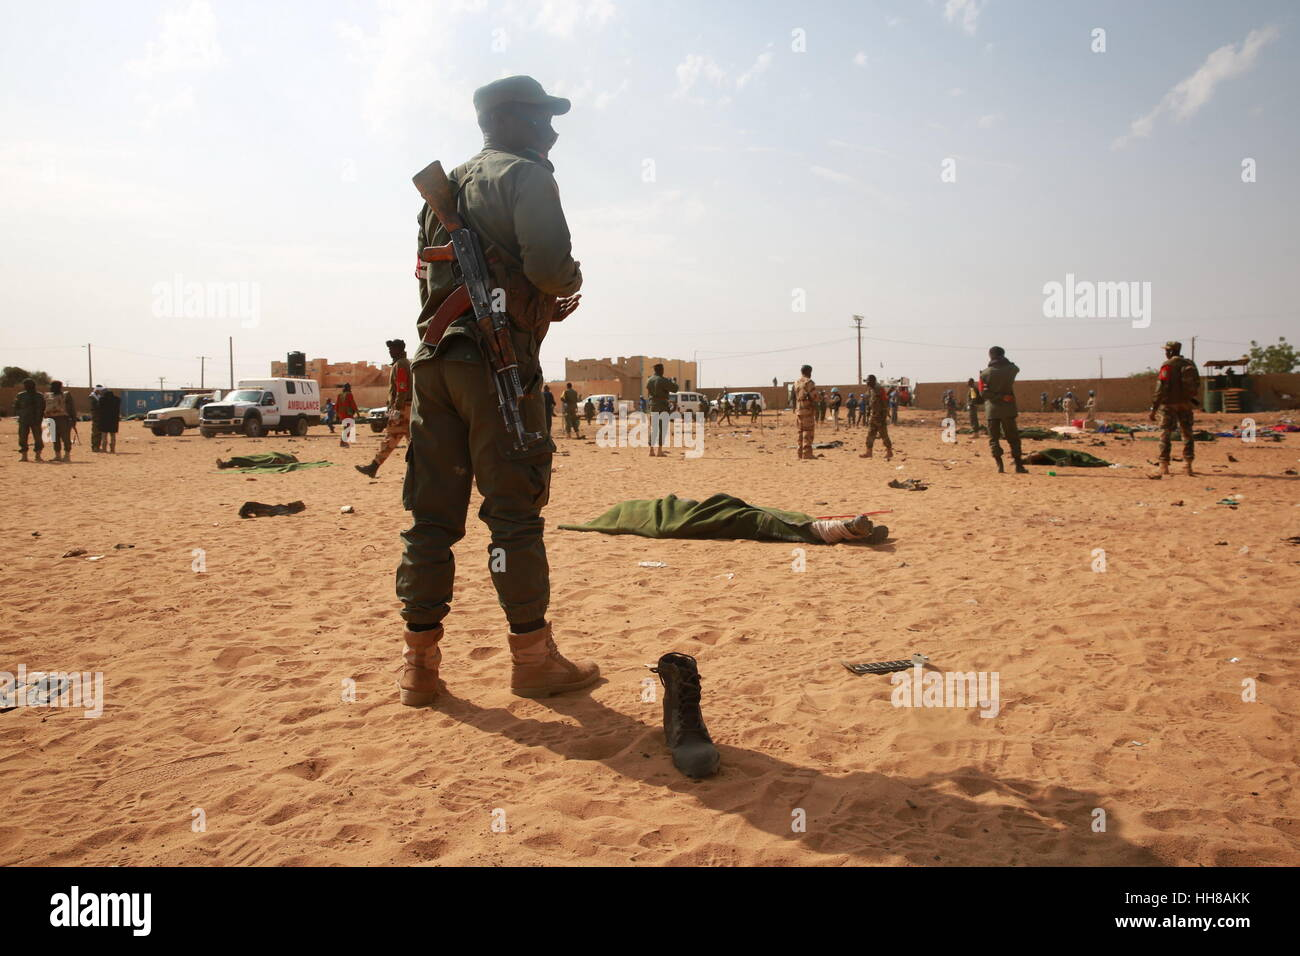 Gao, Mali. 18th January 2017. A member of security forces stands guard at a car bomb attack site in Gao, Mali, on - Stock Image